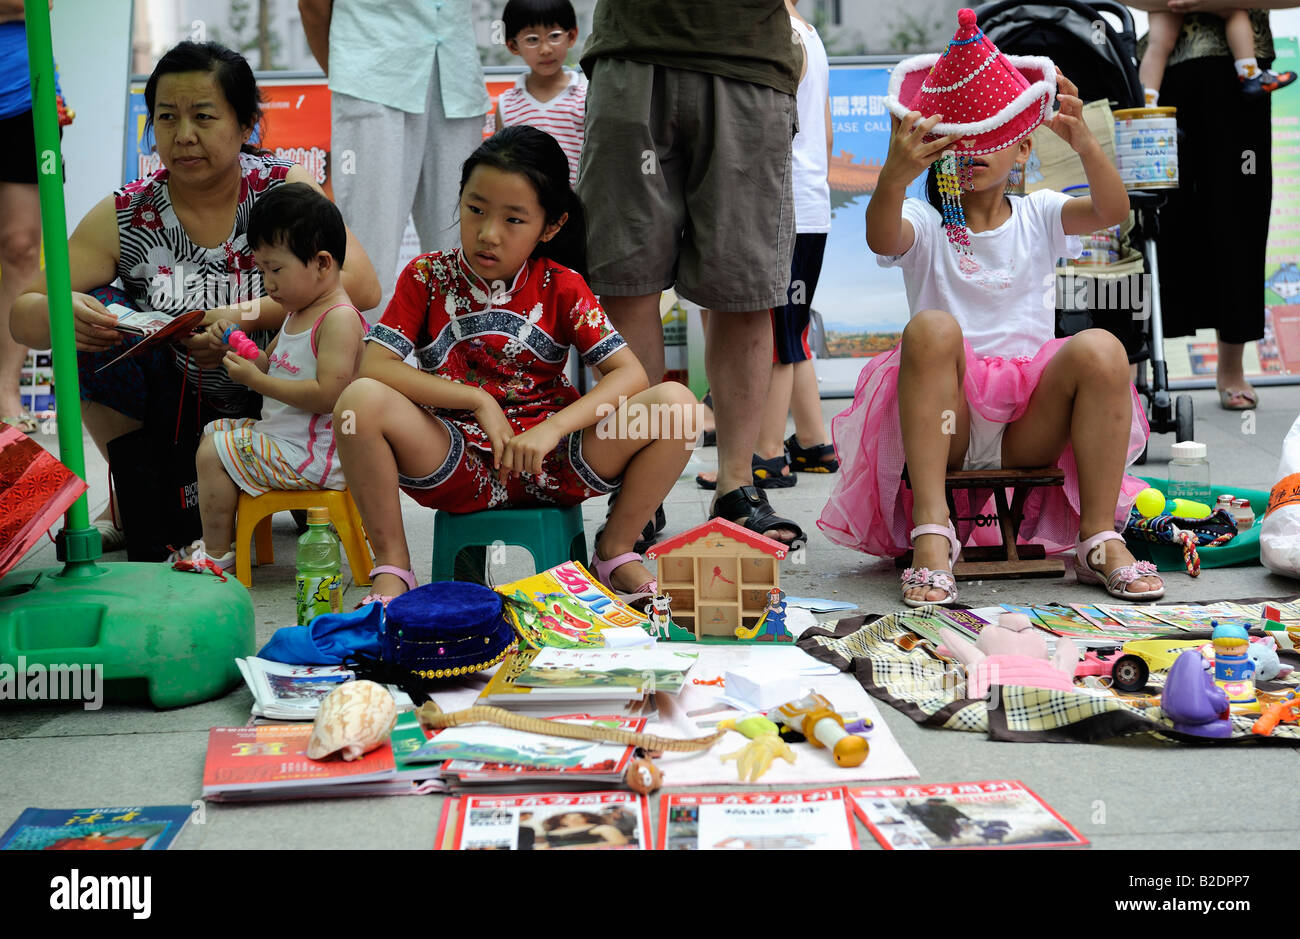 Teenages sell uesd goods at flea market on Sunday in a community in Beijing, China. 26-Jul-2008 - Stock Image